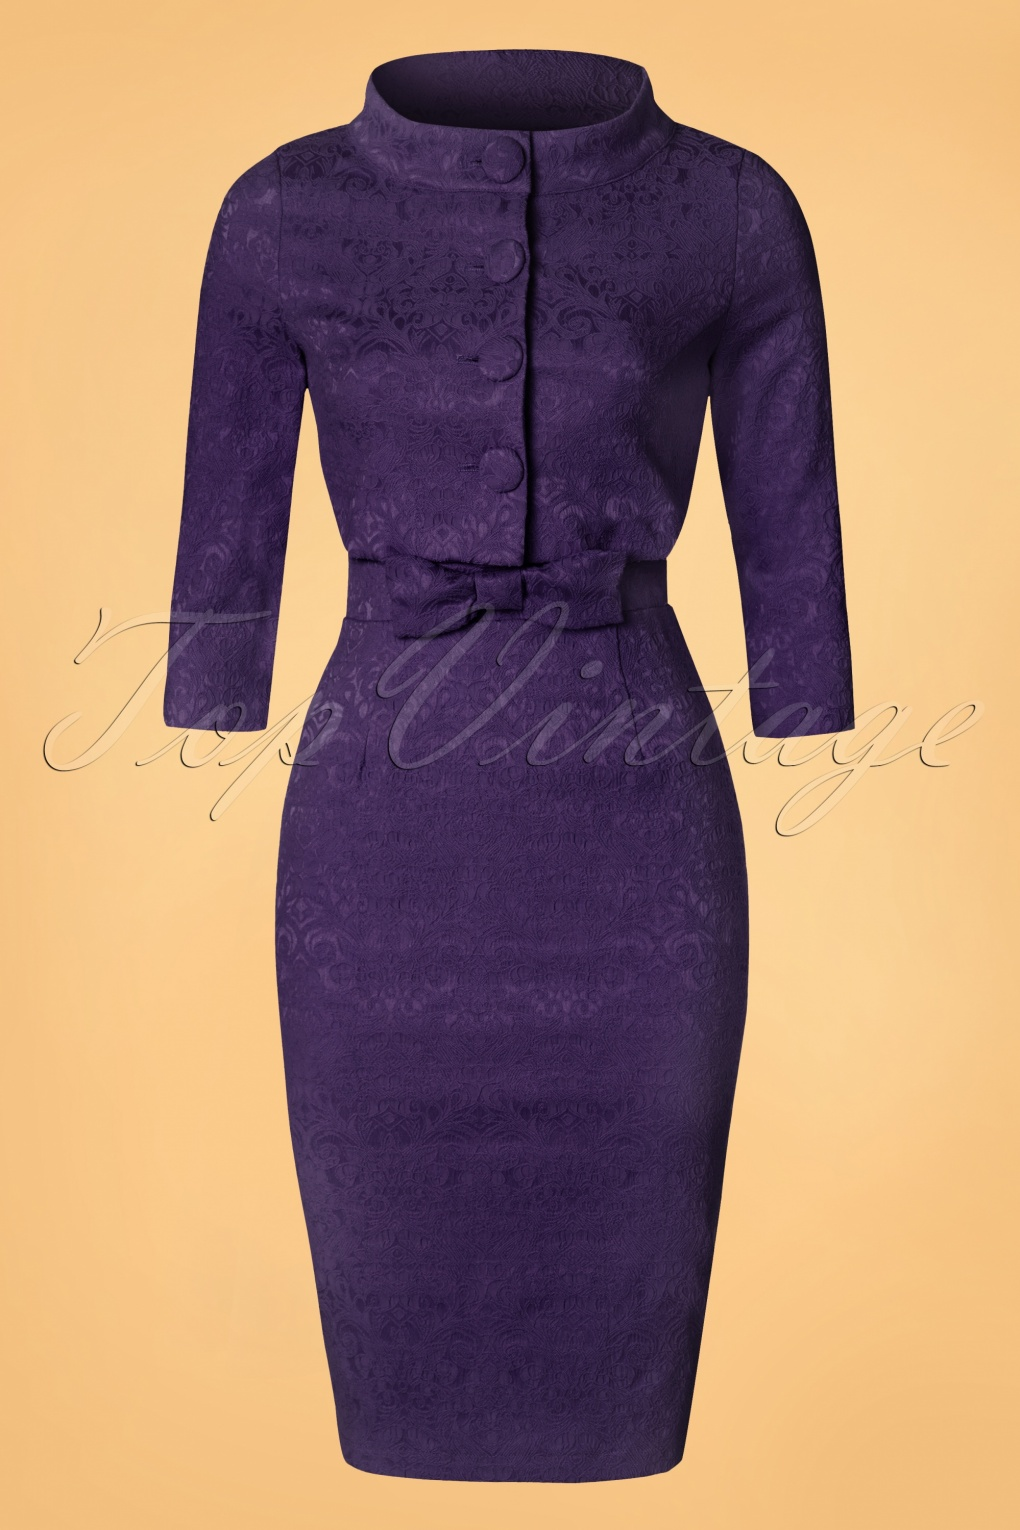 1960s Mad Men Dresses and Clothing Styles 60s Maybelle Jacquard Twin Set in Aubergine £58.66 AT vintagedancer.com